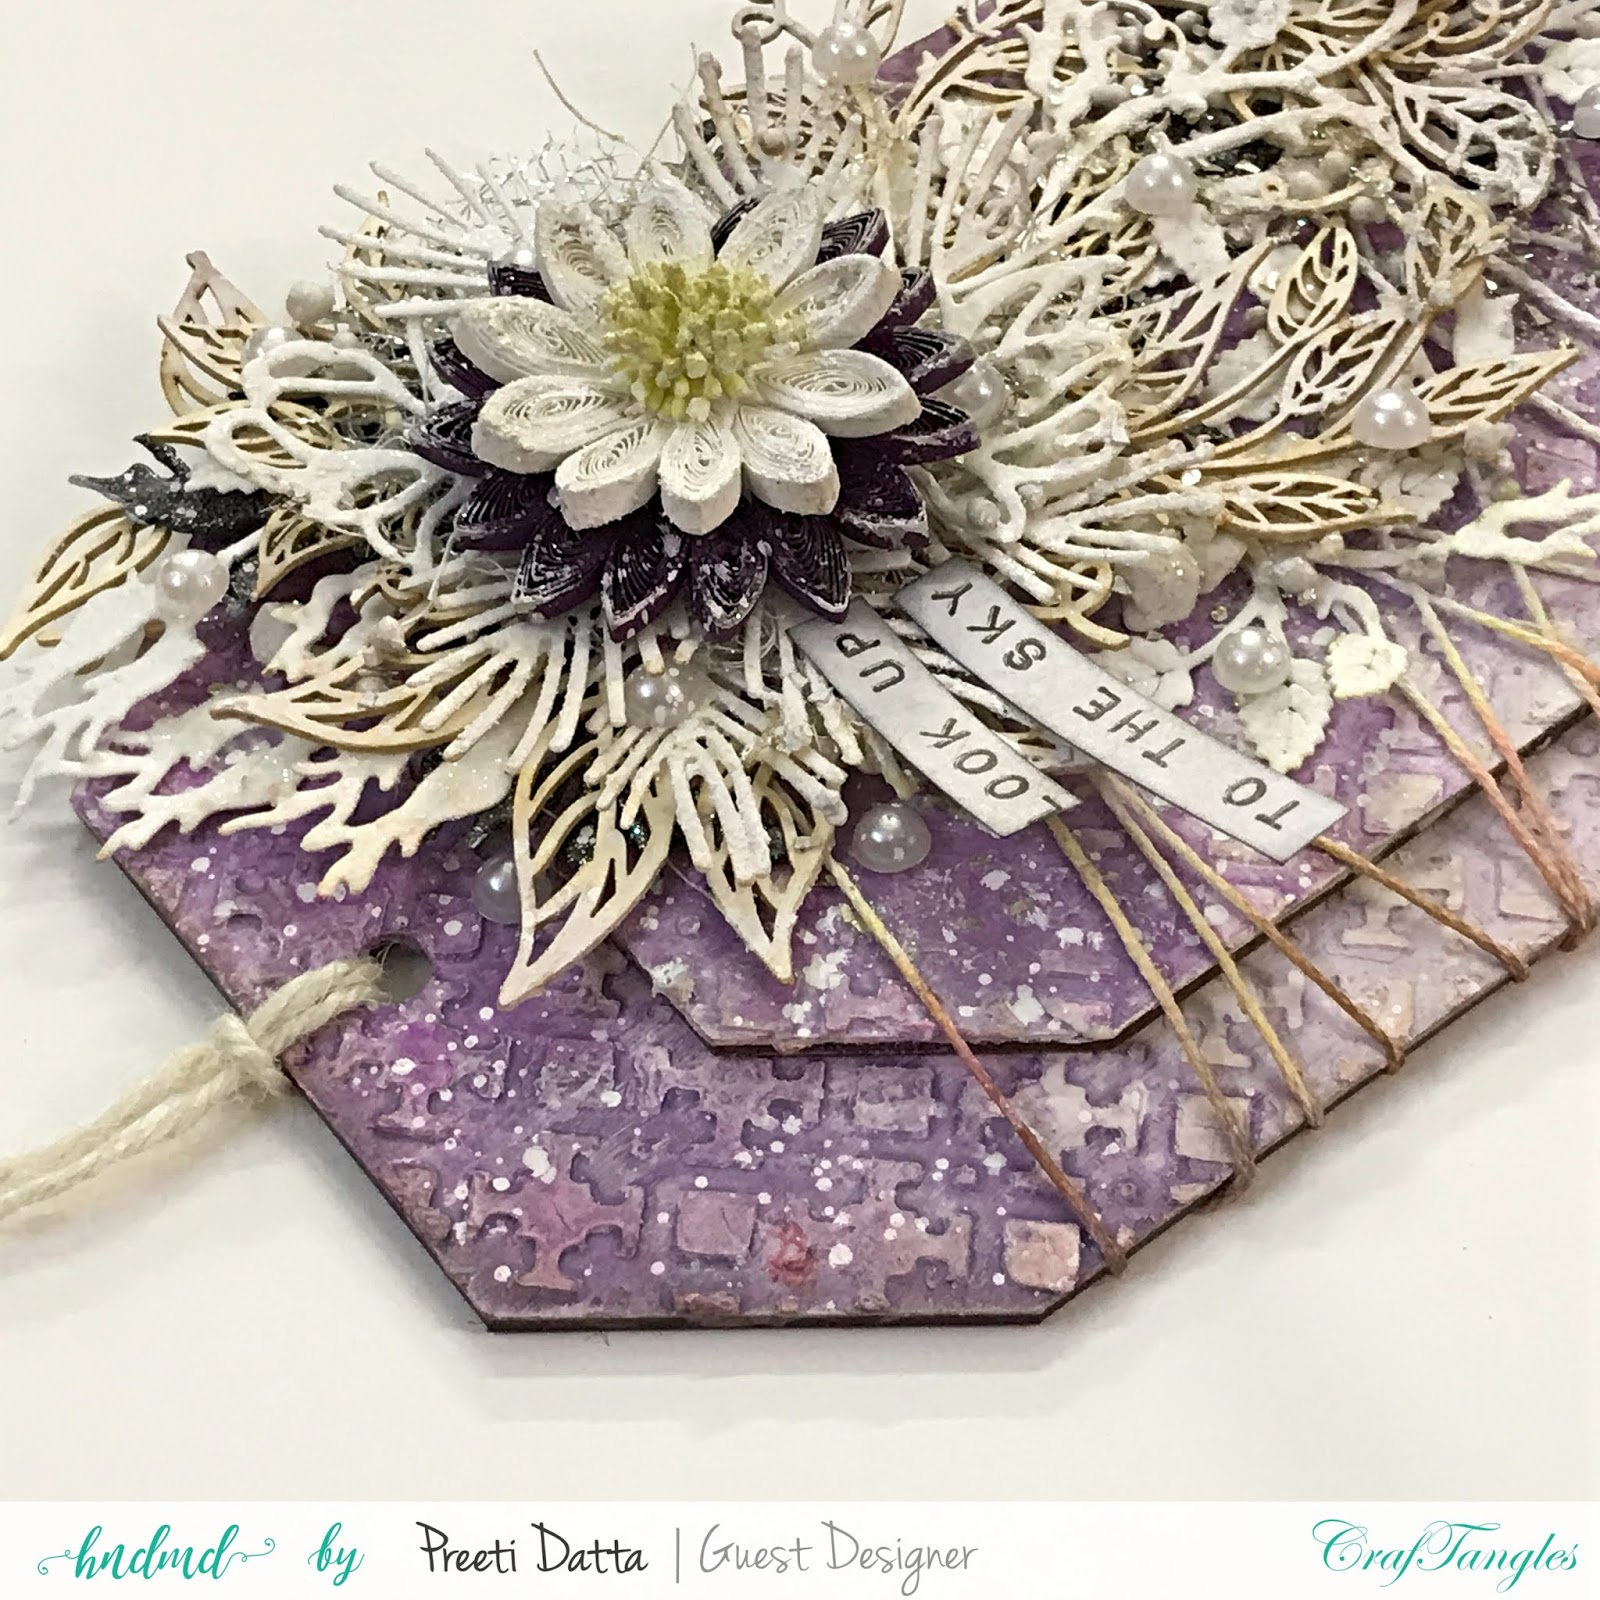 Floral Mixed Media Tag (with Pictorial) by Preeti Datta 9